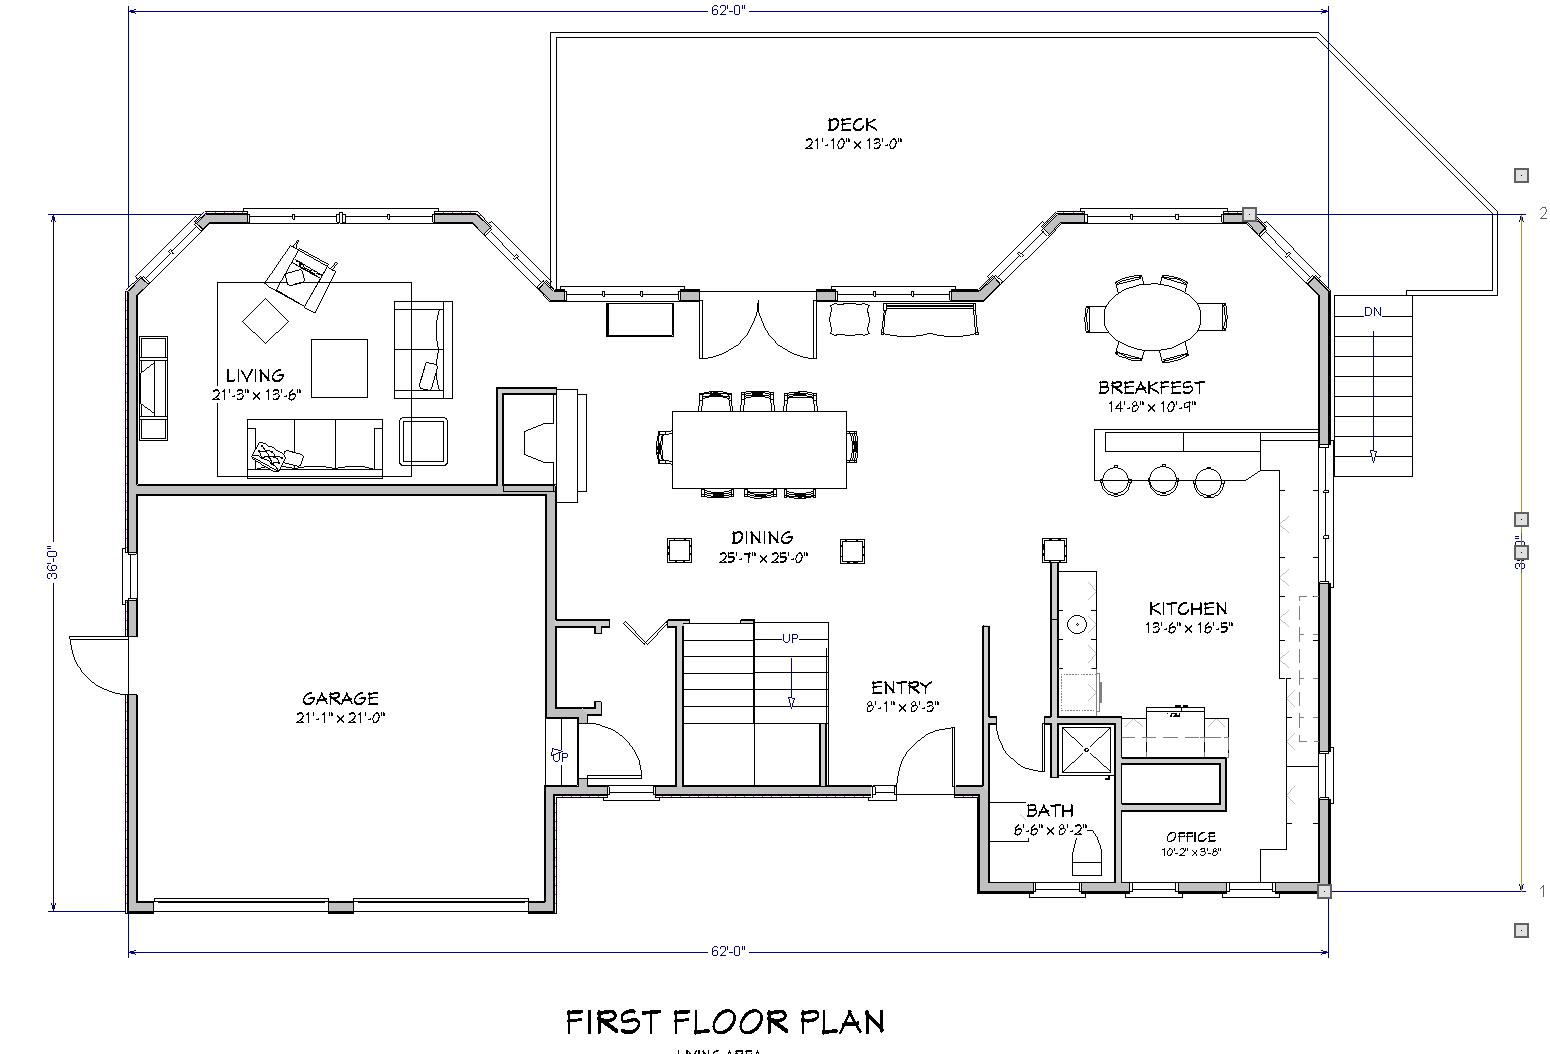 Beach House Plan 1st Floor (View 2 of 10)